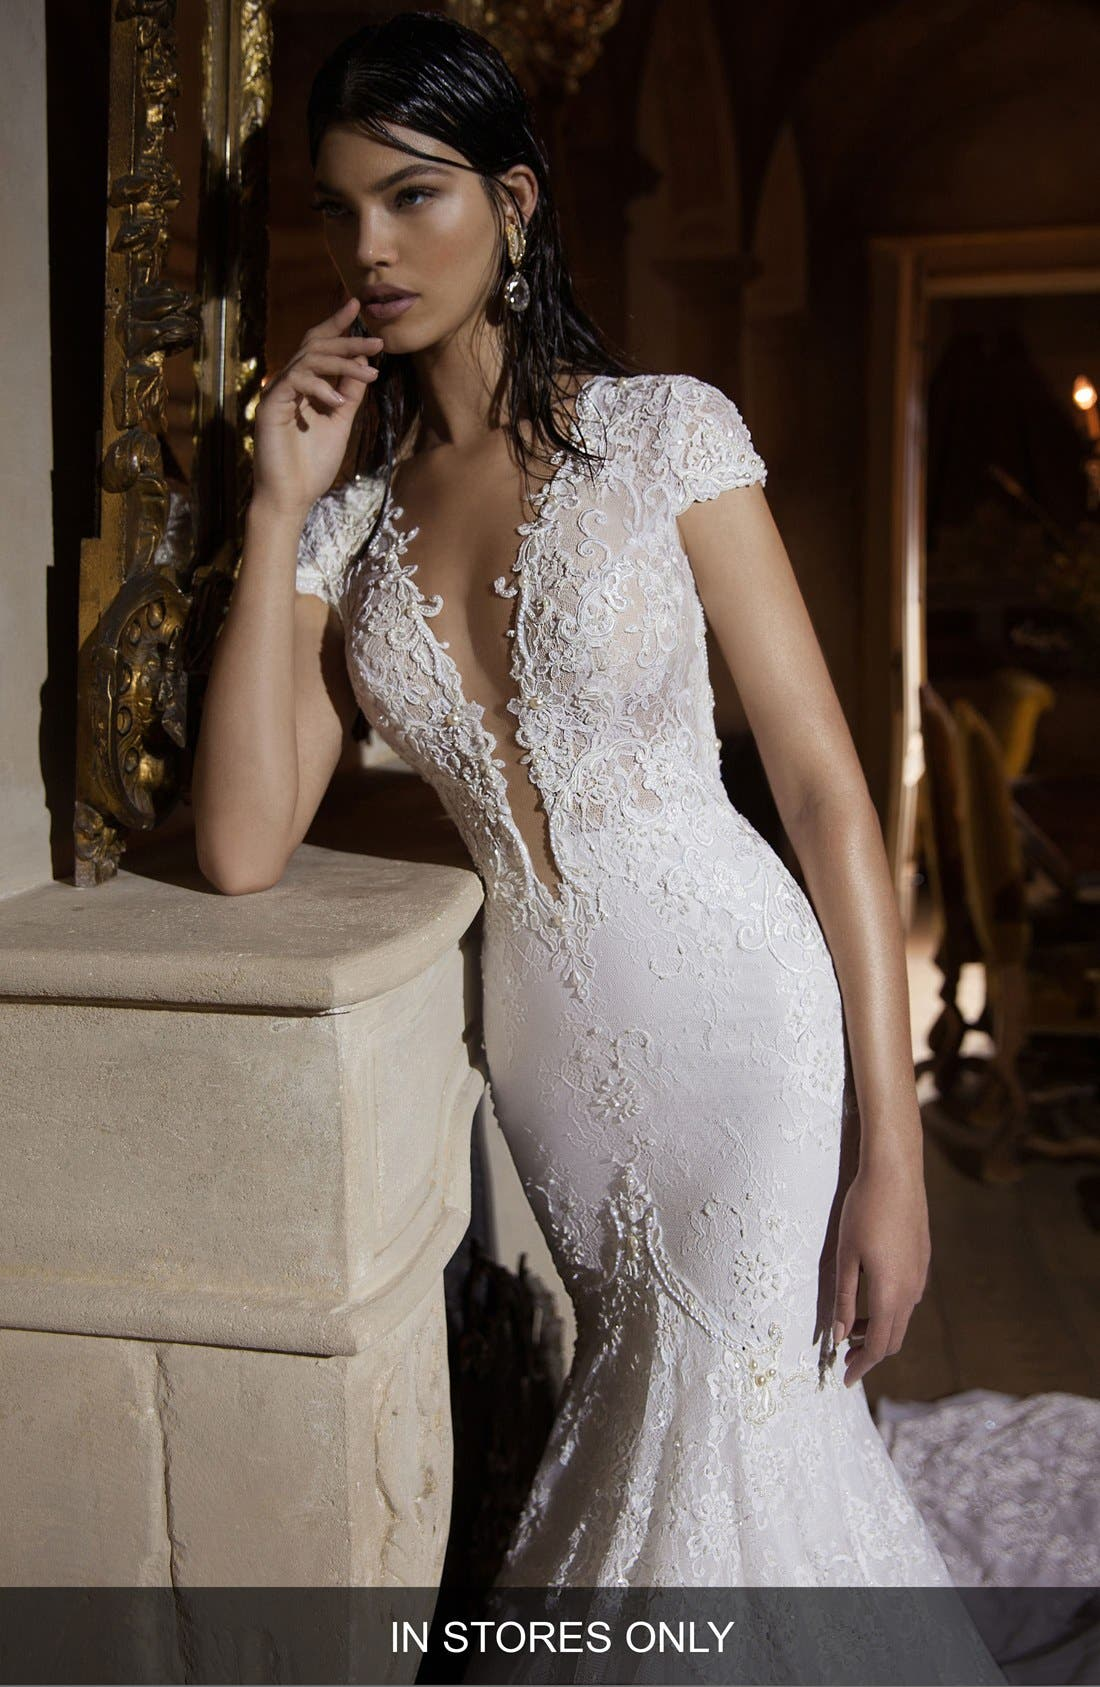 Plunging V-Neck Cap Sleeve Lace Mermaid Gown,                         Main,                         color, 100